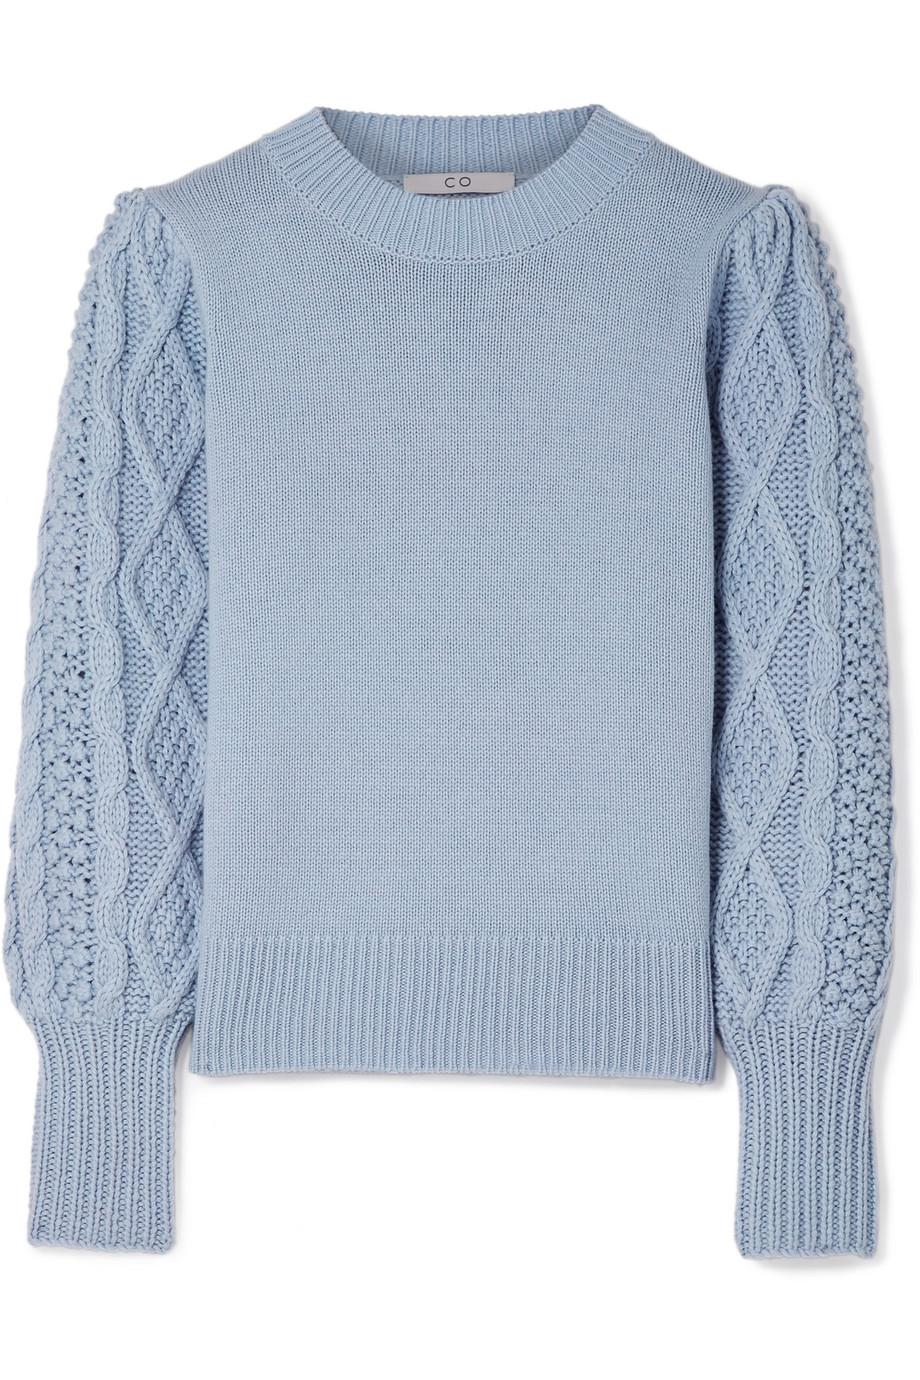 Release Dates Online Clearance Explore Wool and Cashmere-Blend Sweater Co g0qZJ